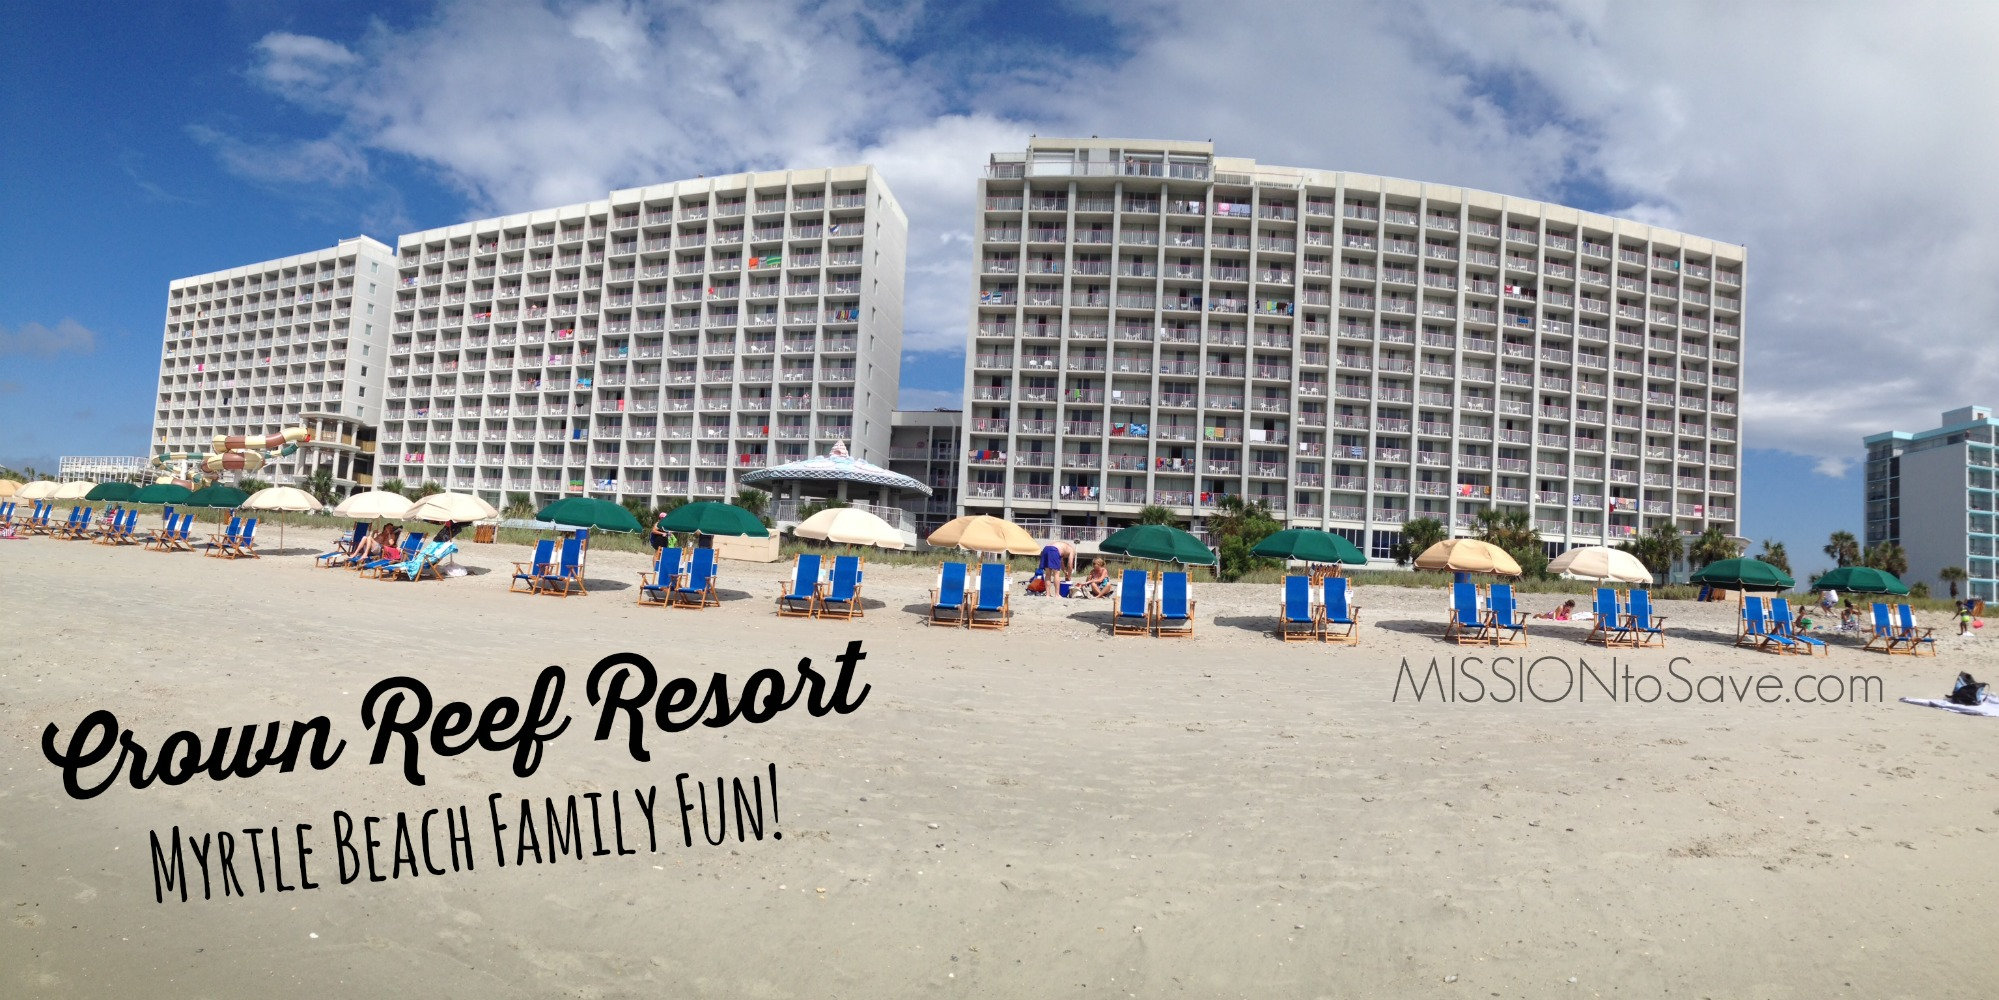 Friendly S Myrtle Beach Coupons